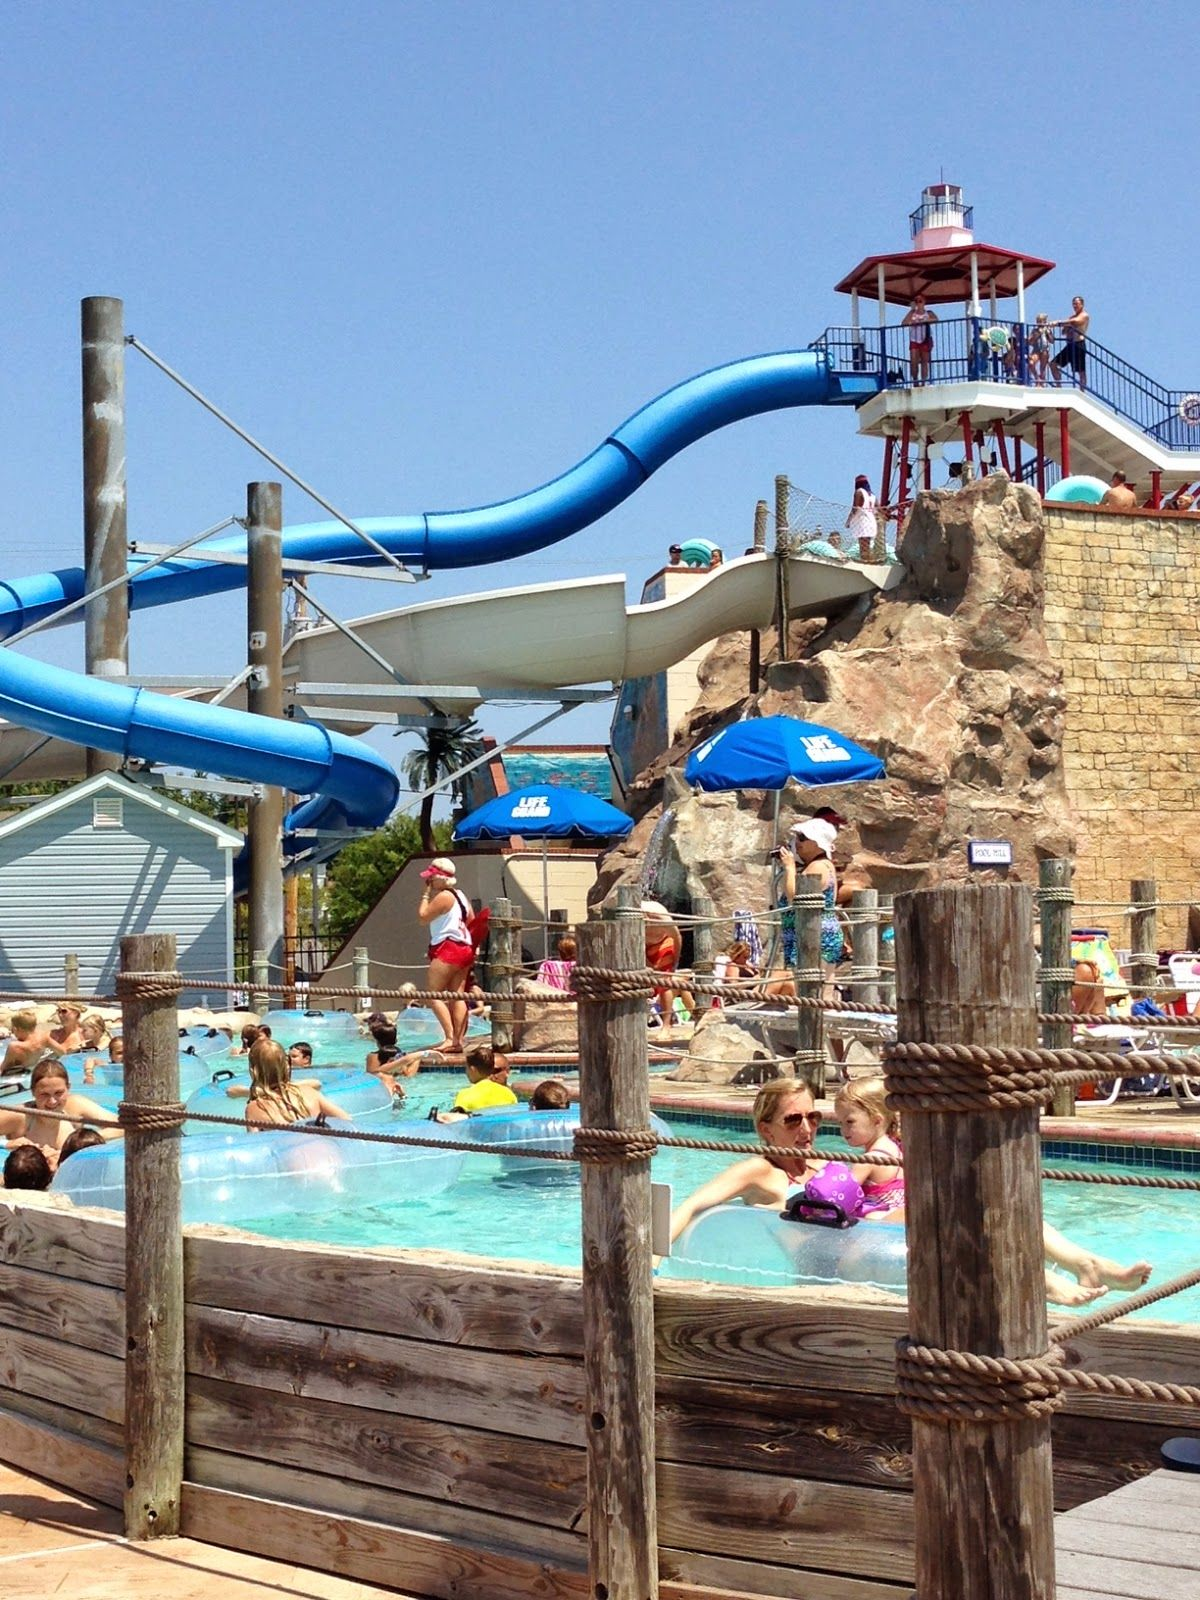 After Seeing Livingsocial Groupon Deals Several Times We Decided To Visit Chesapeake Beach Waterpark Finally This Summer